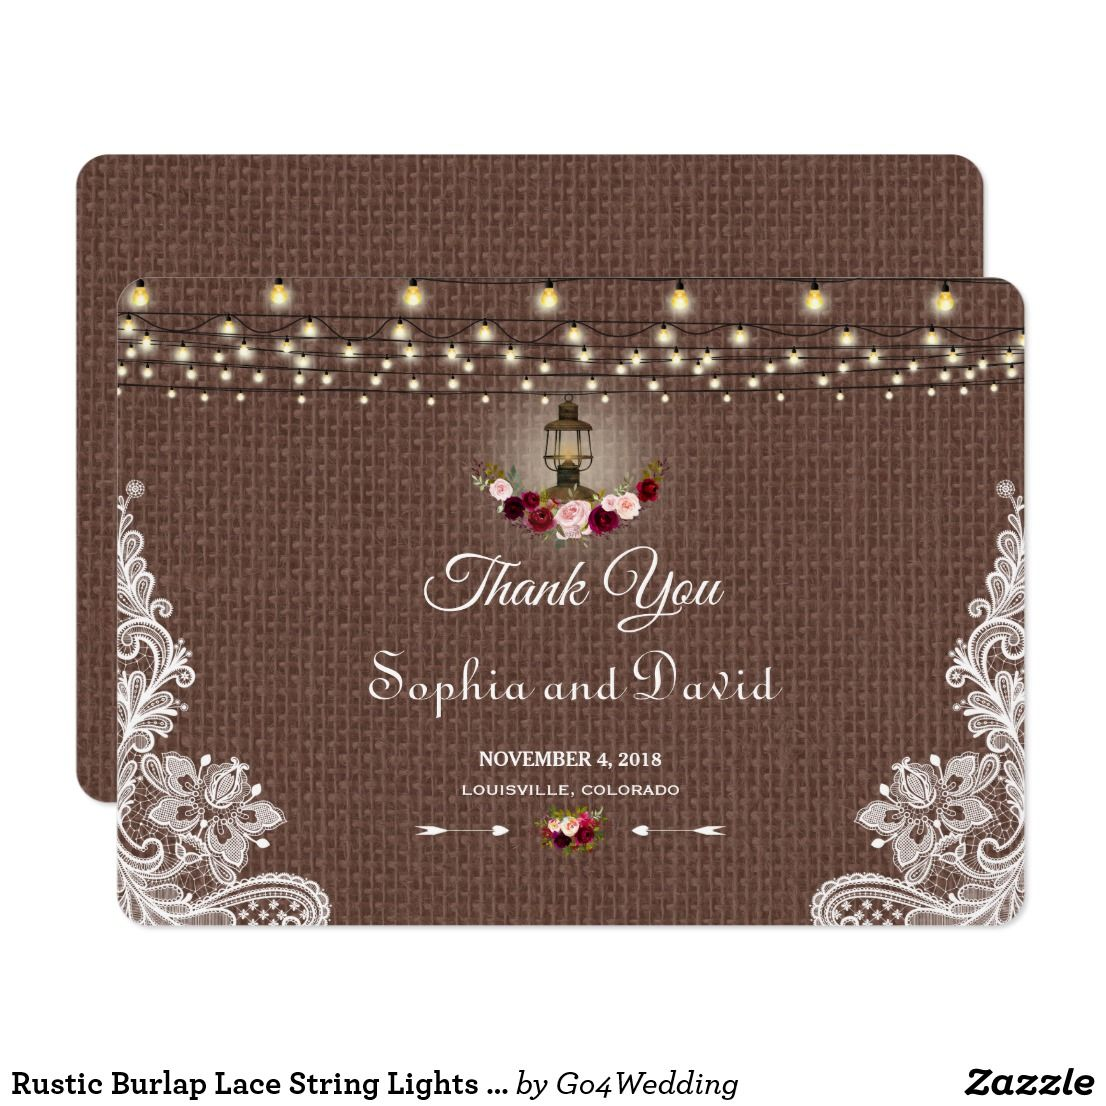 Rustic burlap lace string lights wedding thank you card